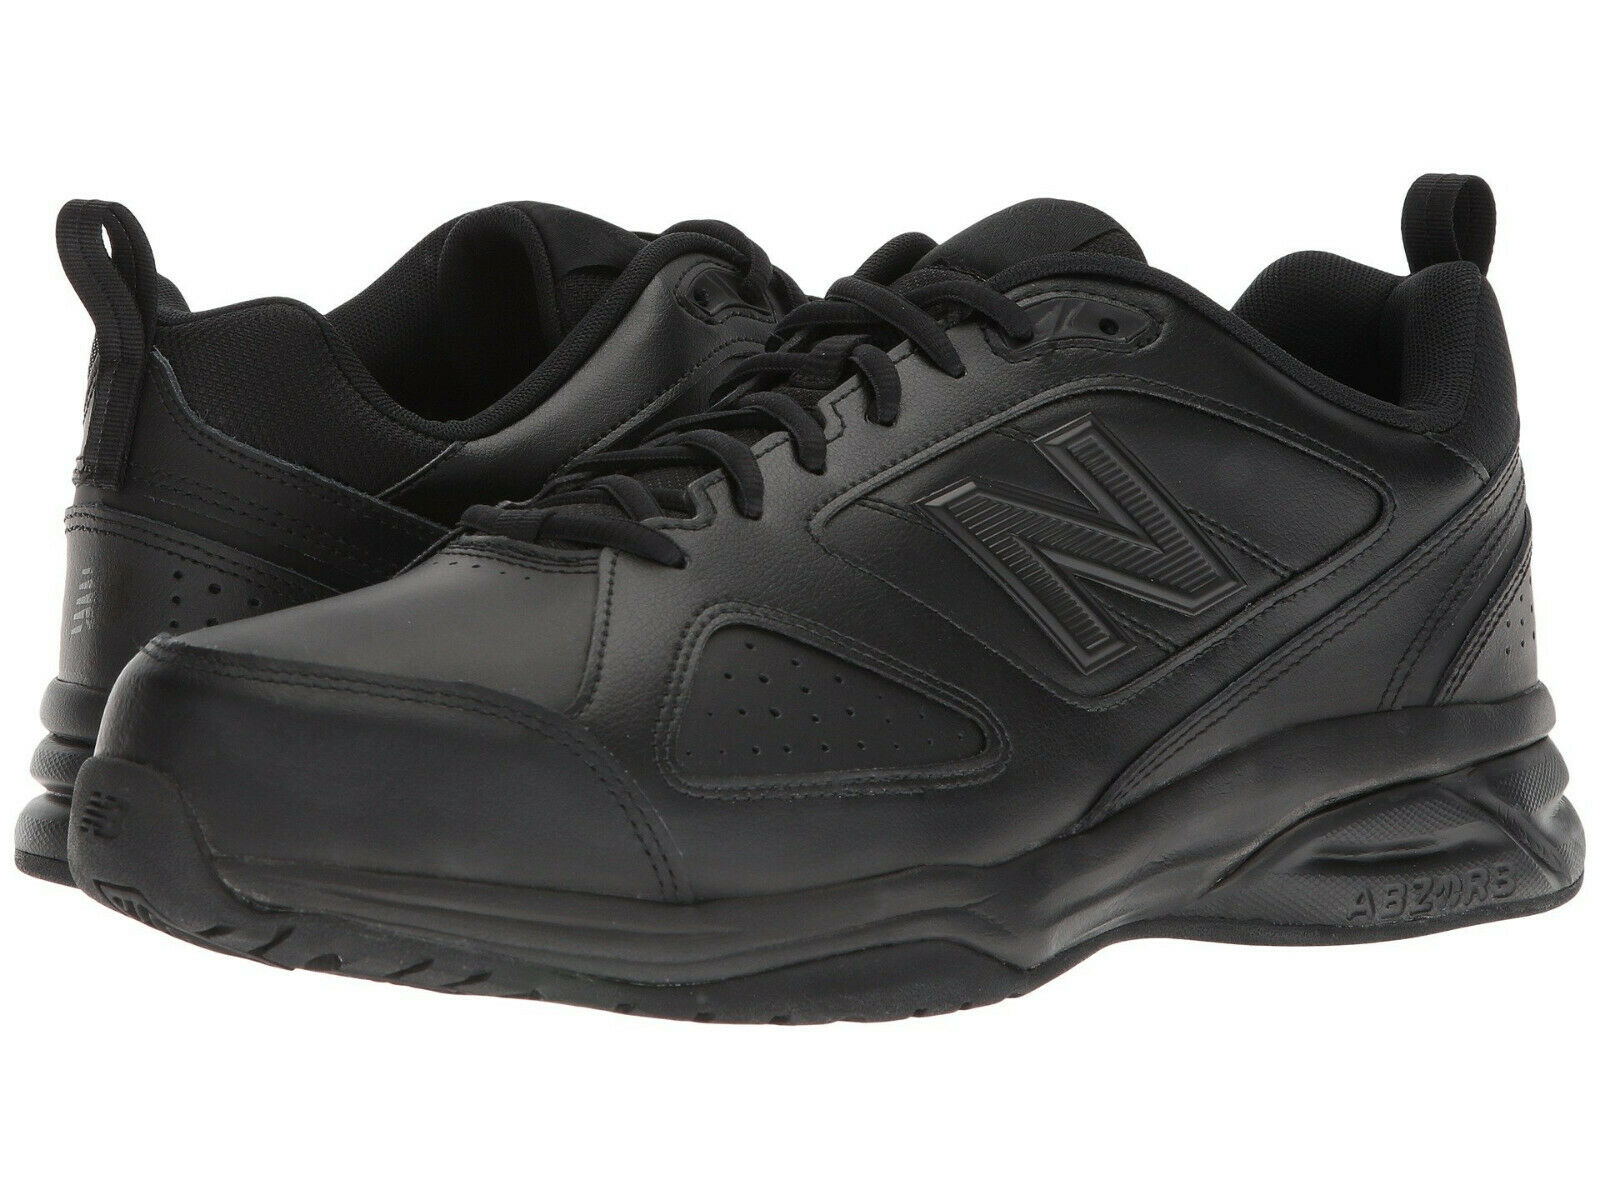 Men New Balance MX623AB3 Walking shoes Wide 2E Black Leather 100% Authentic New